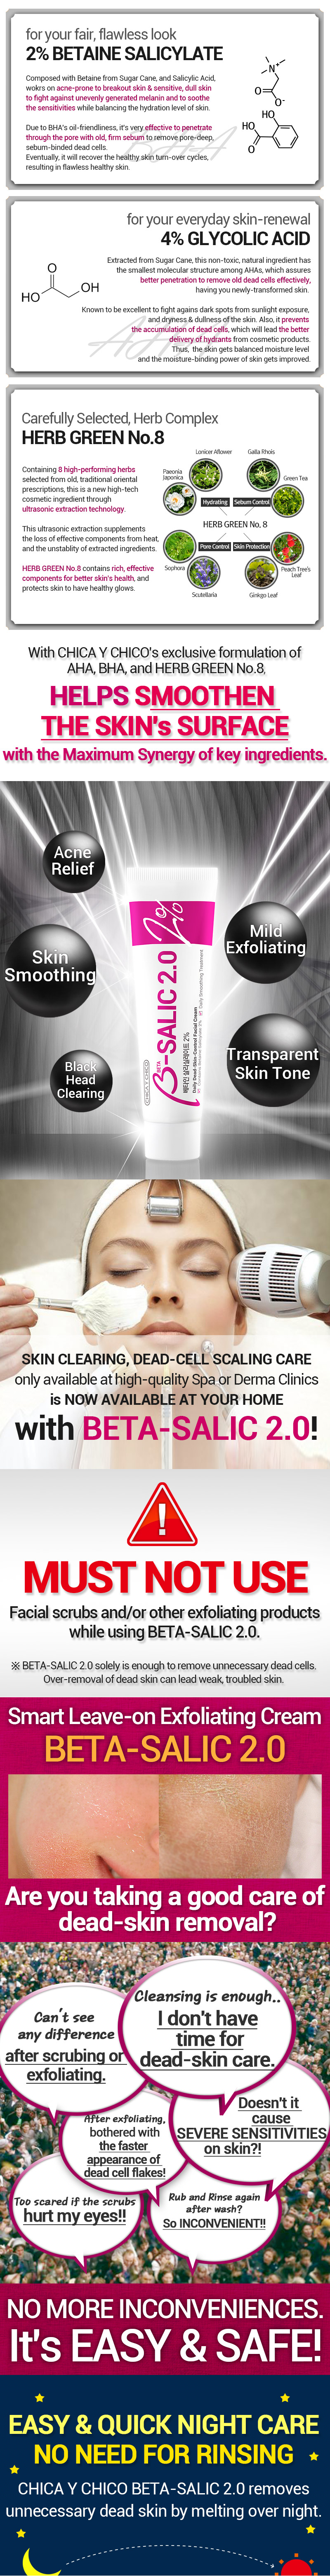 Beta Salic 2.0 cream